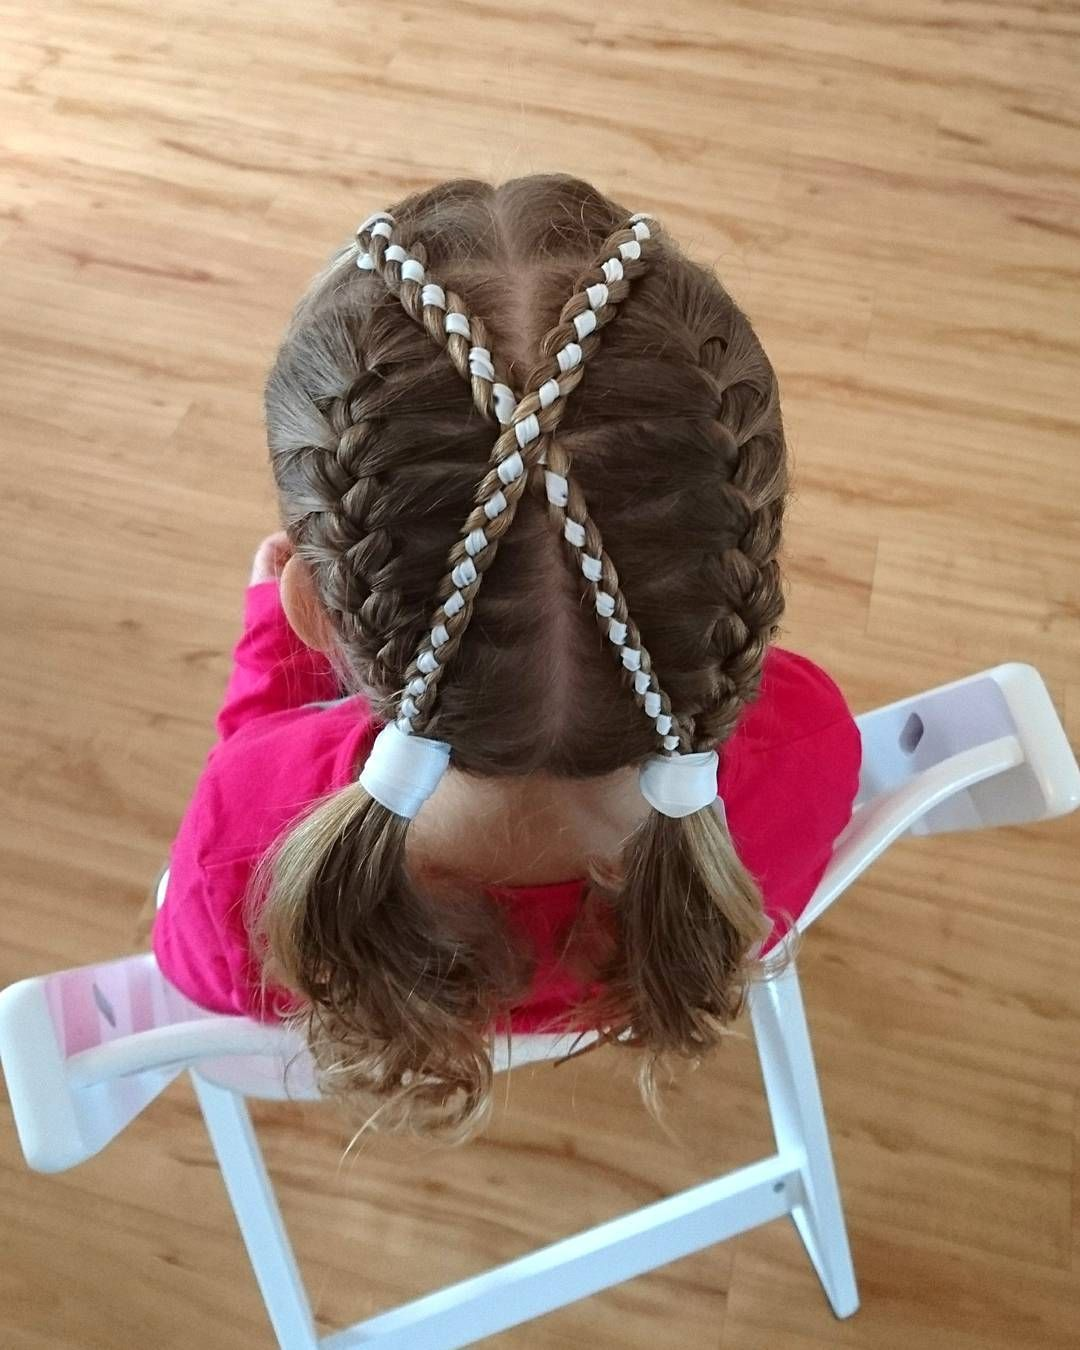 2 Four Strand Ribbon Braids And 2 French Braids Into Pigtails Inspired By Goudhaartje Nl And Laura Hairstyles Vlechten Vlechtidee Invlechten 4strandbraid